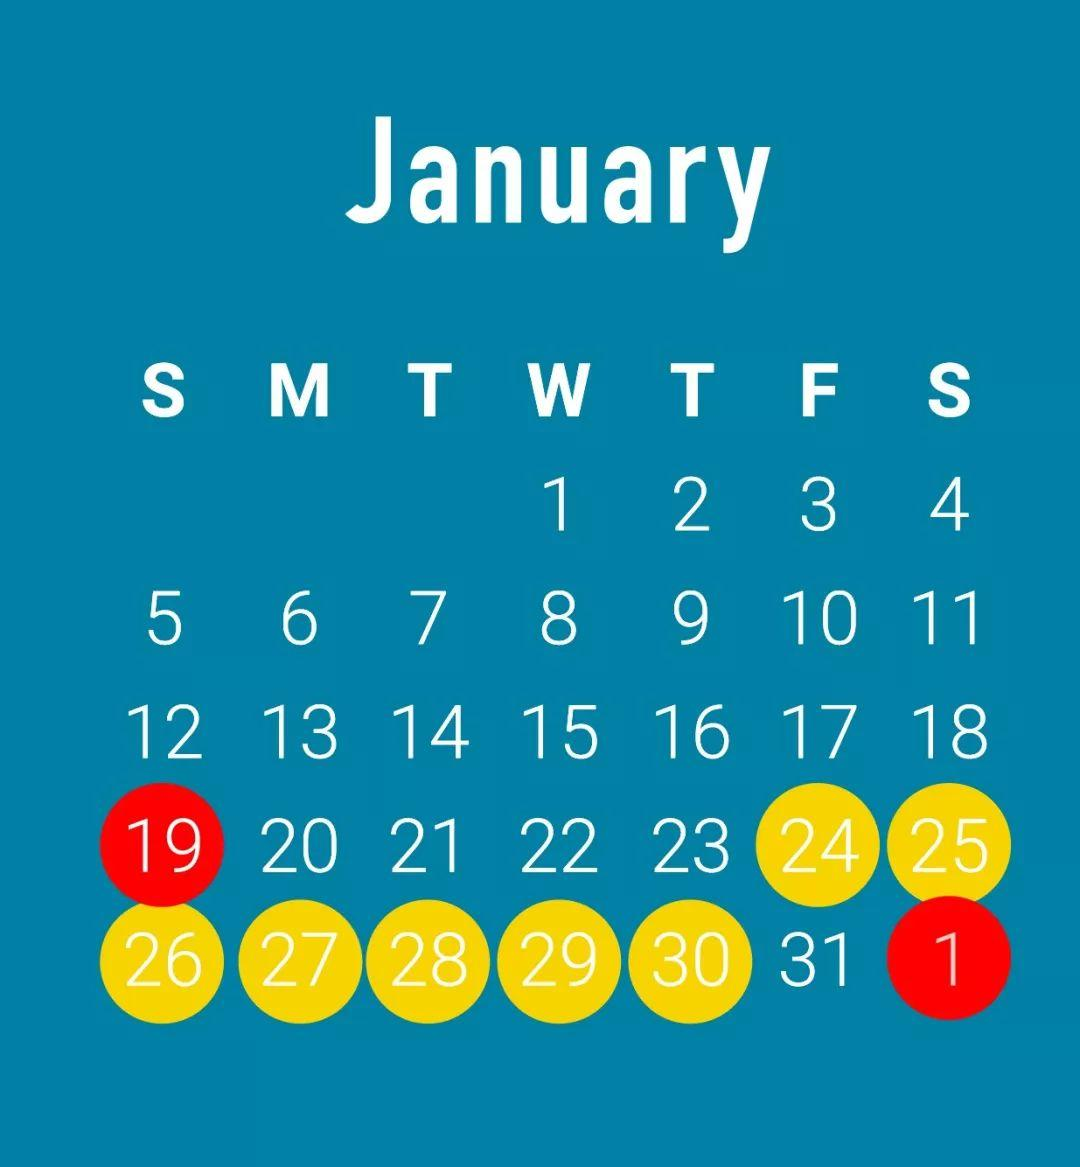 China's 2020 Public Holiday Schedule! Time to Plan Your 2020!